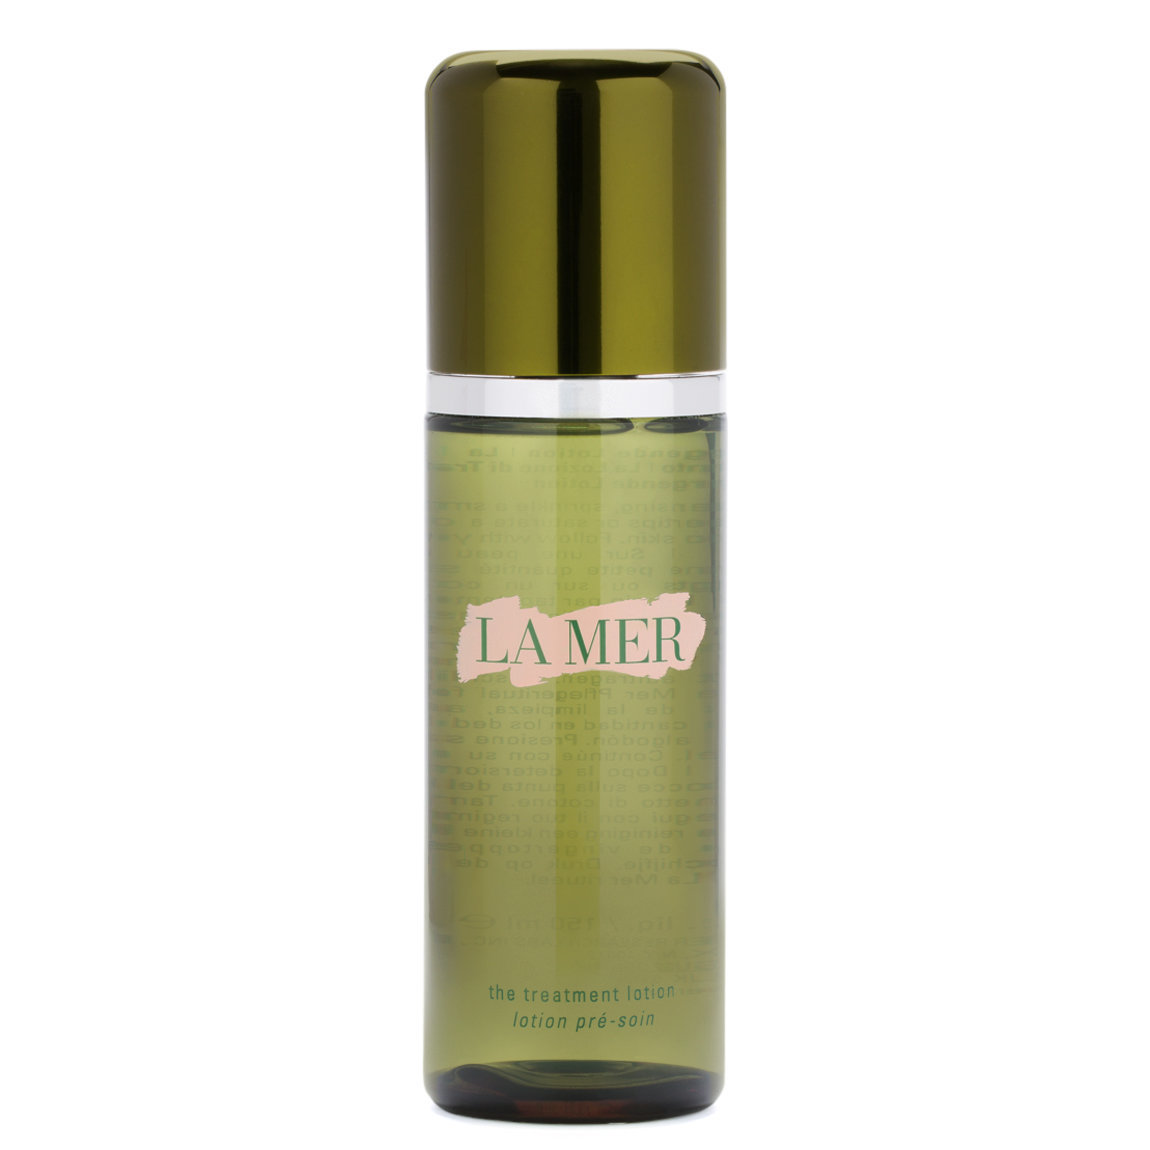 La Mer The Treatment Lotion 5 oz product swatch.